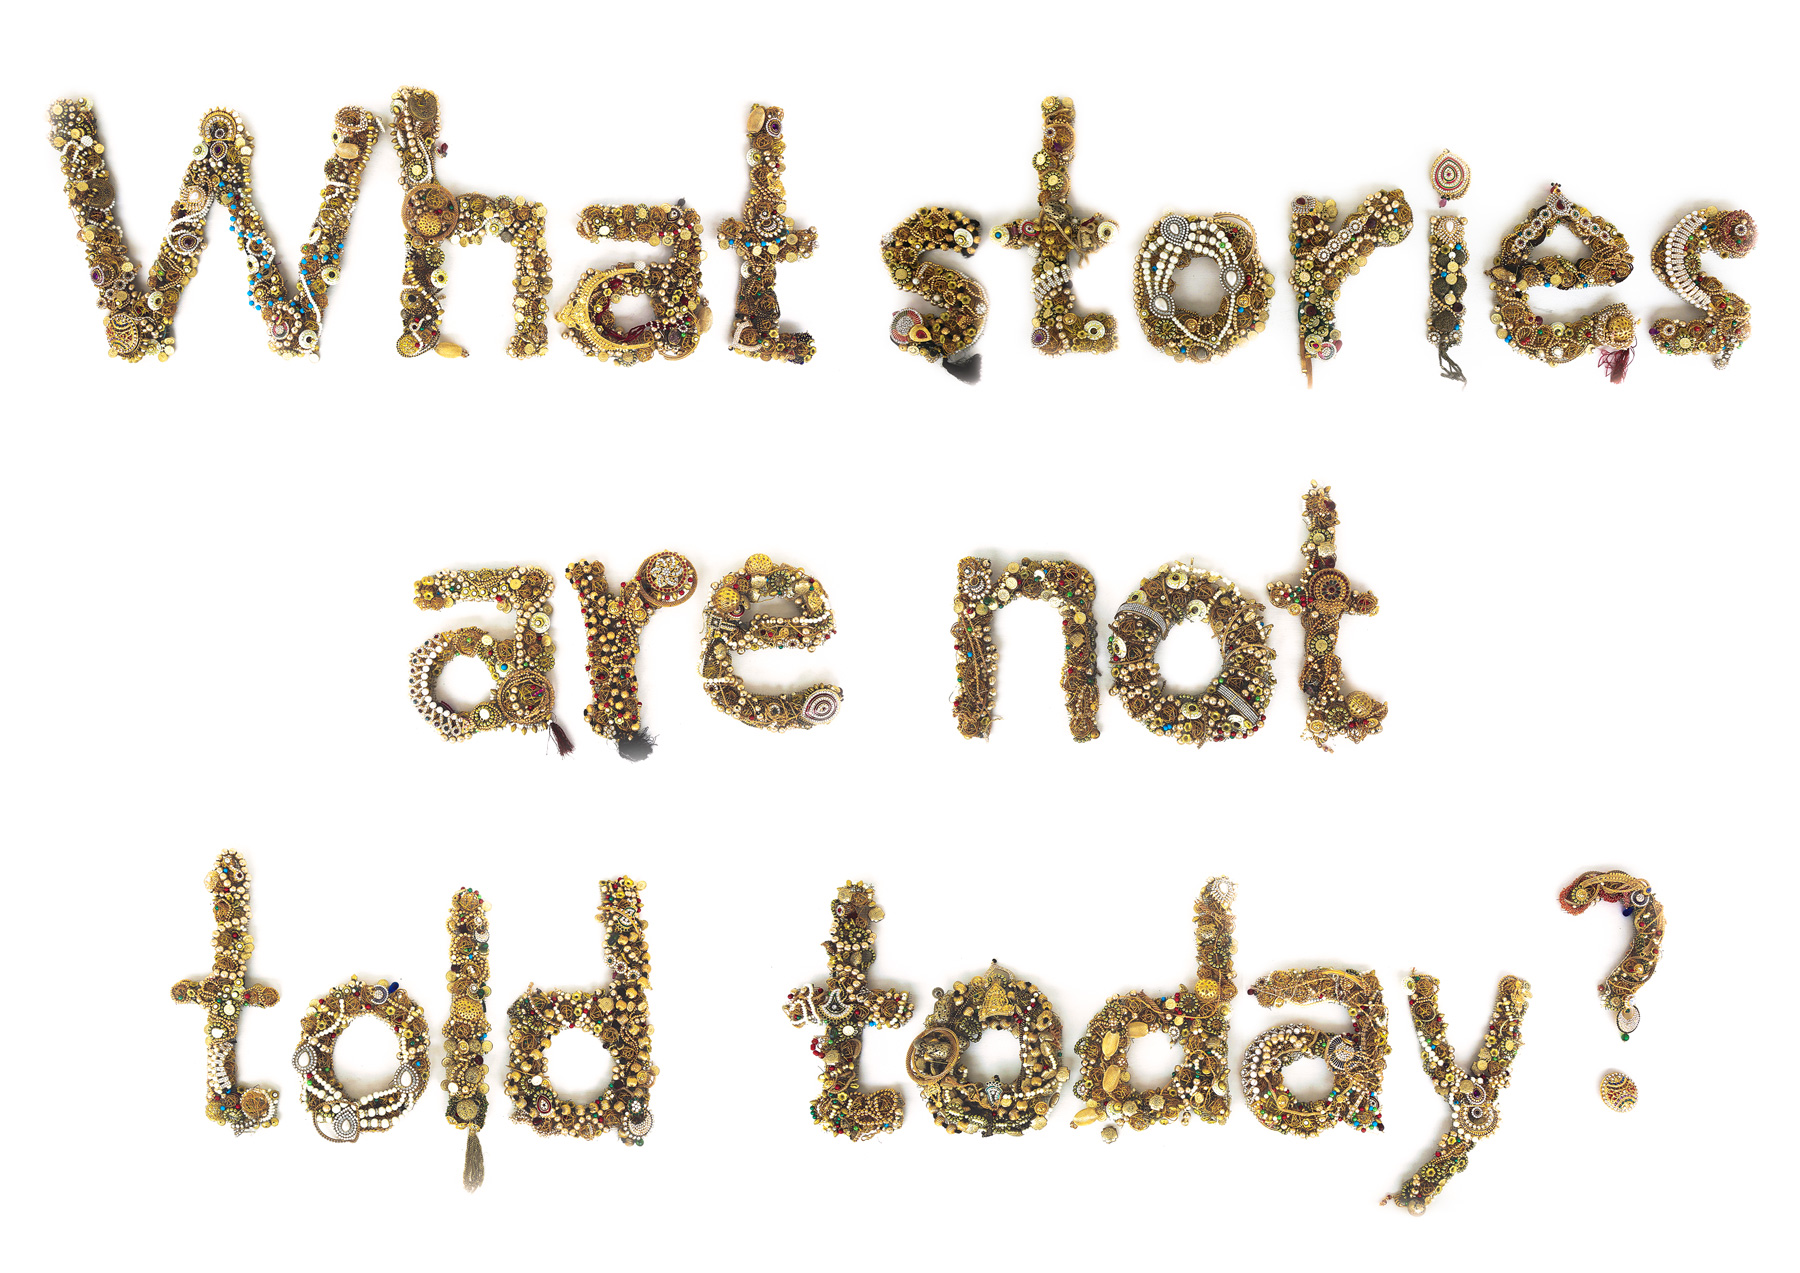 WHAT STORIES ARE NOT TOLD TODAY?